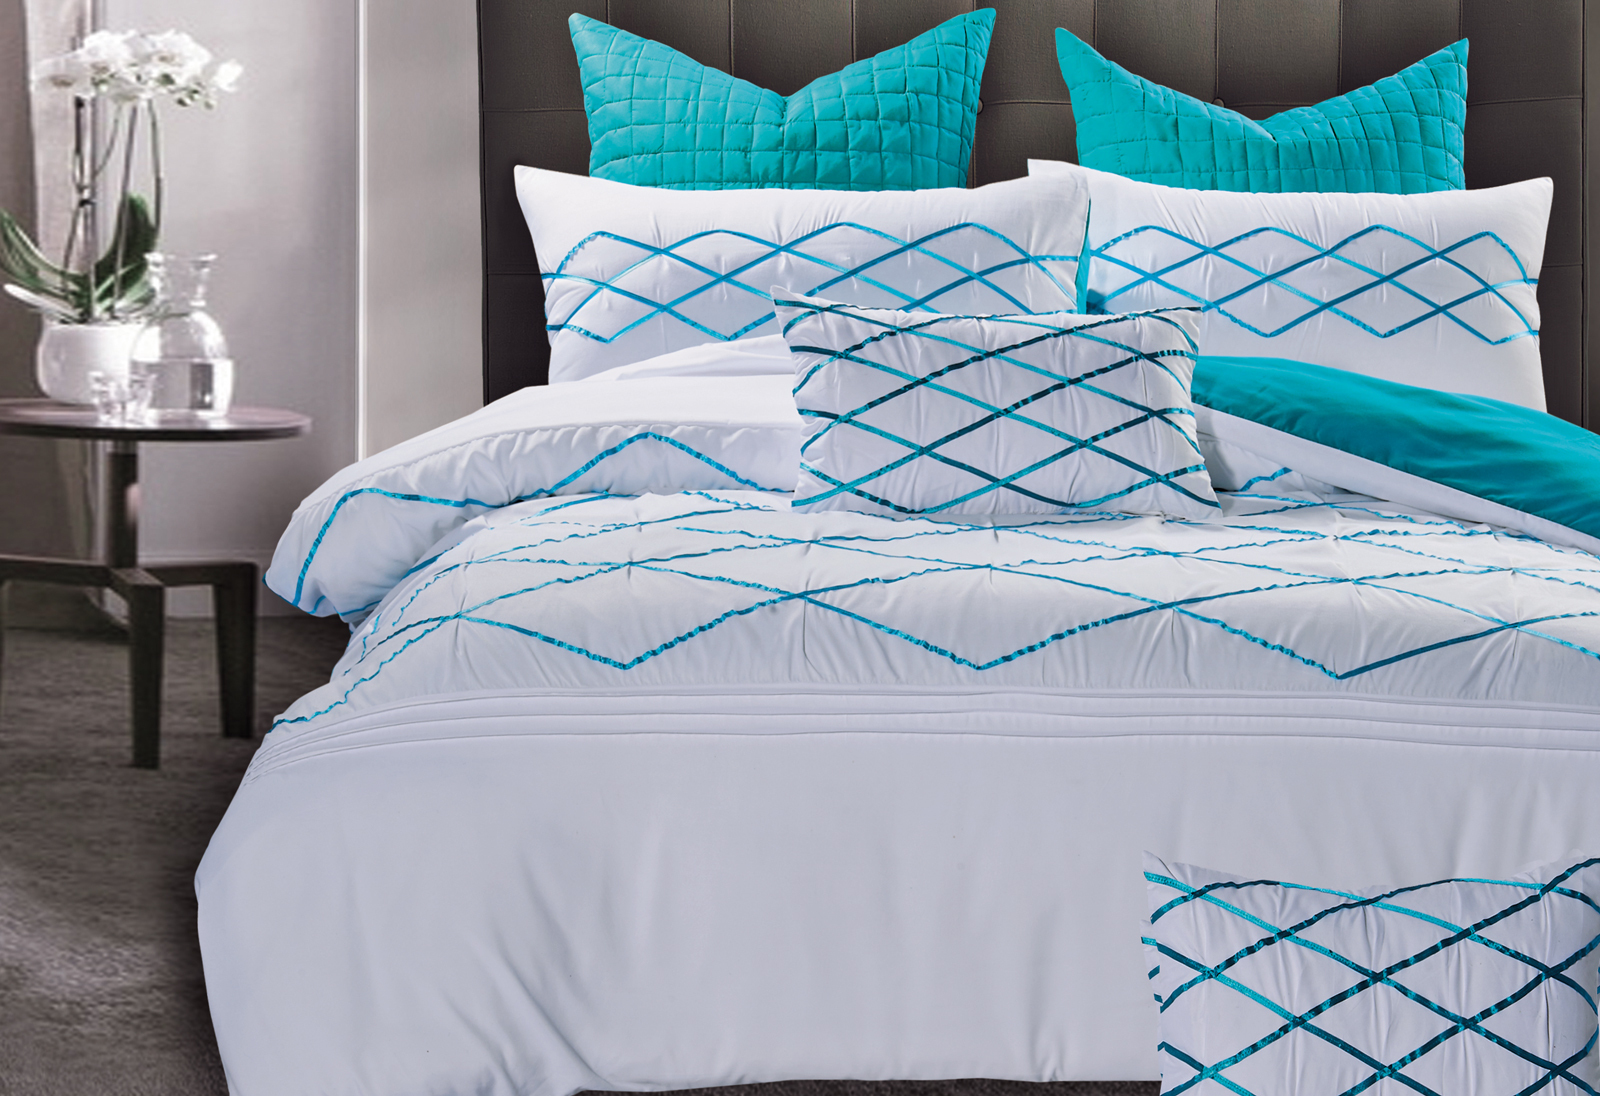 Turquoise Quilt Cover Adela White And Turquoise Blue Quilt Cover Set By Luxton